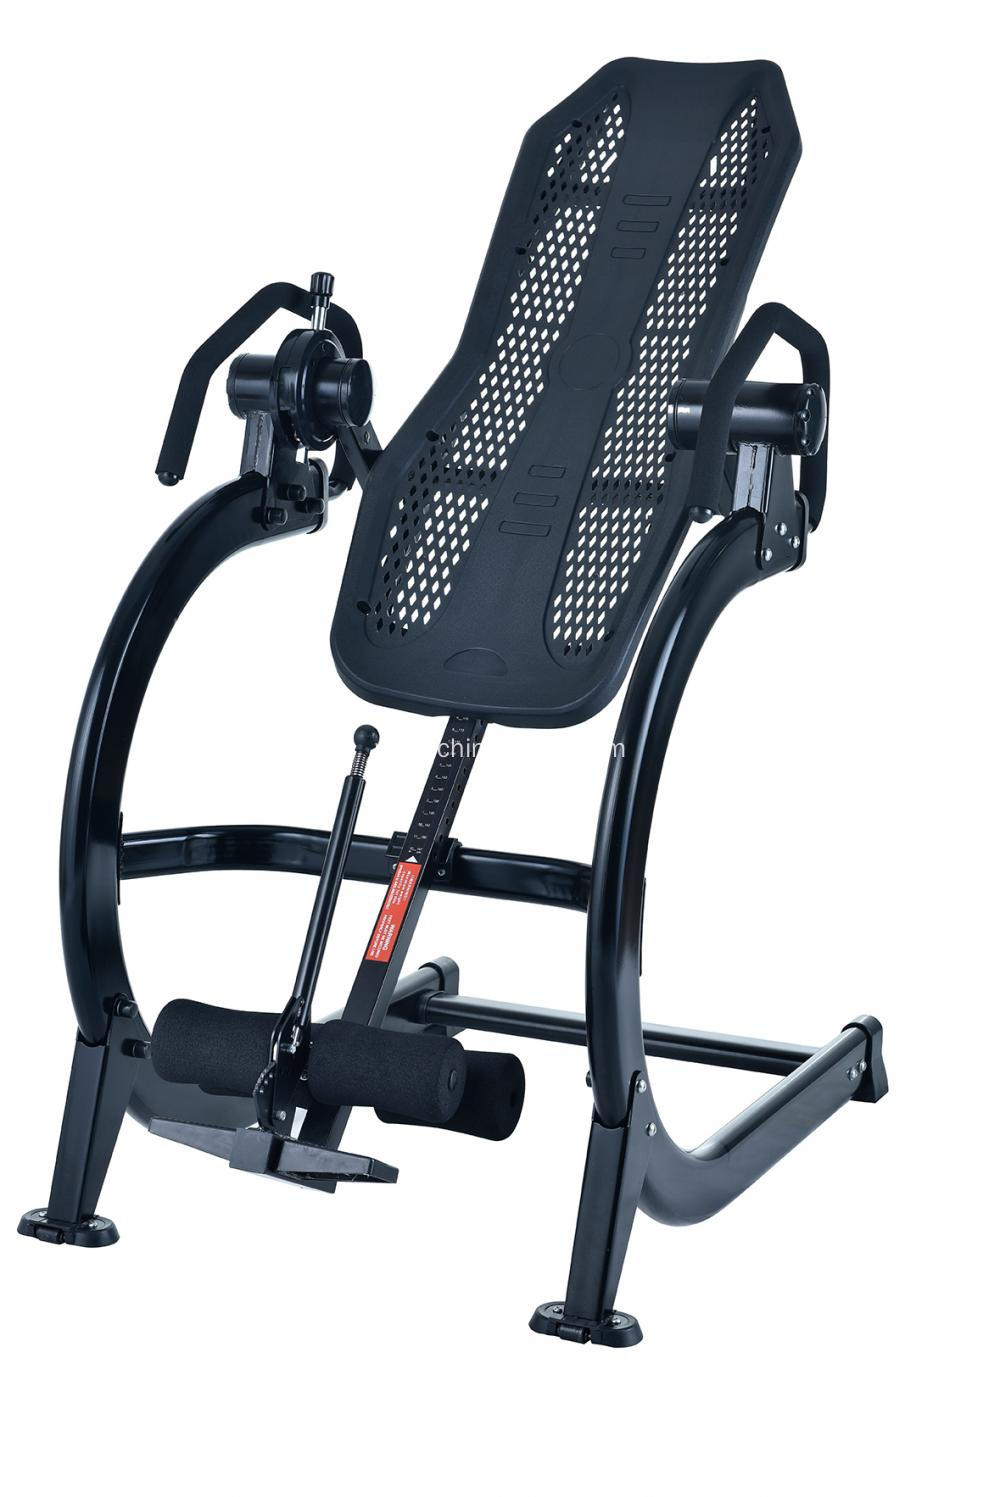 Fitness Machine Inversion Table For Healthy